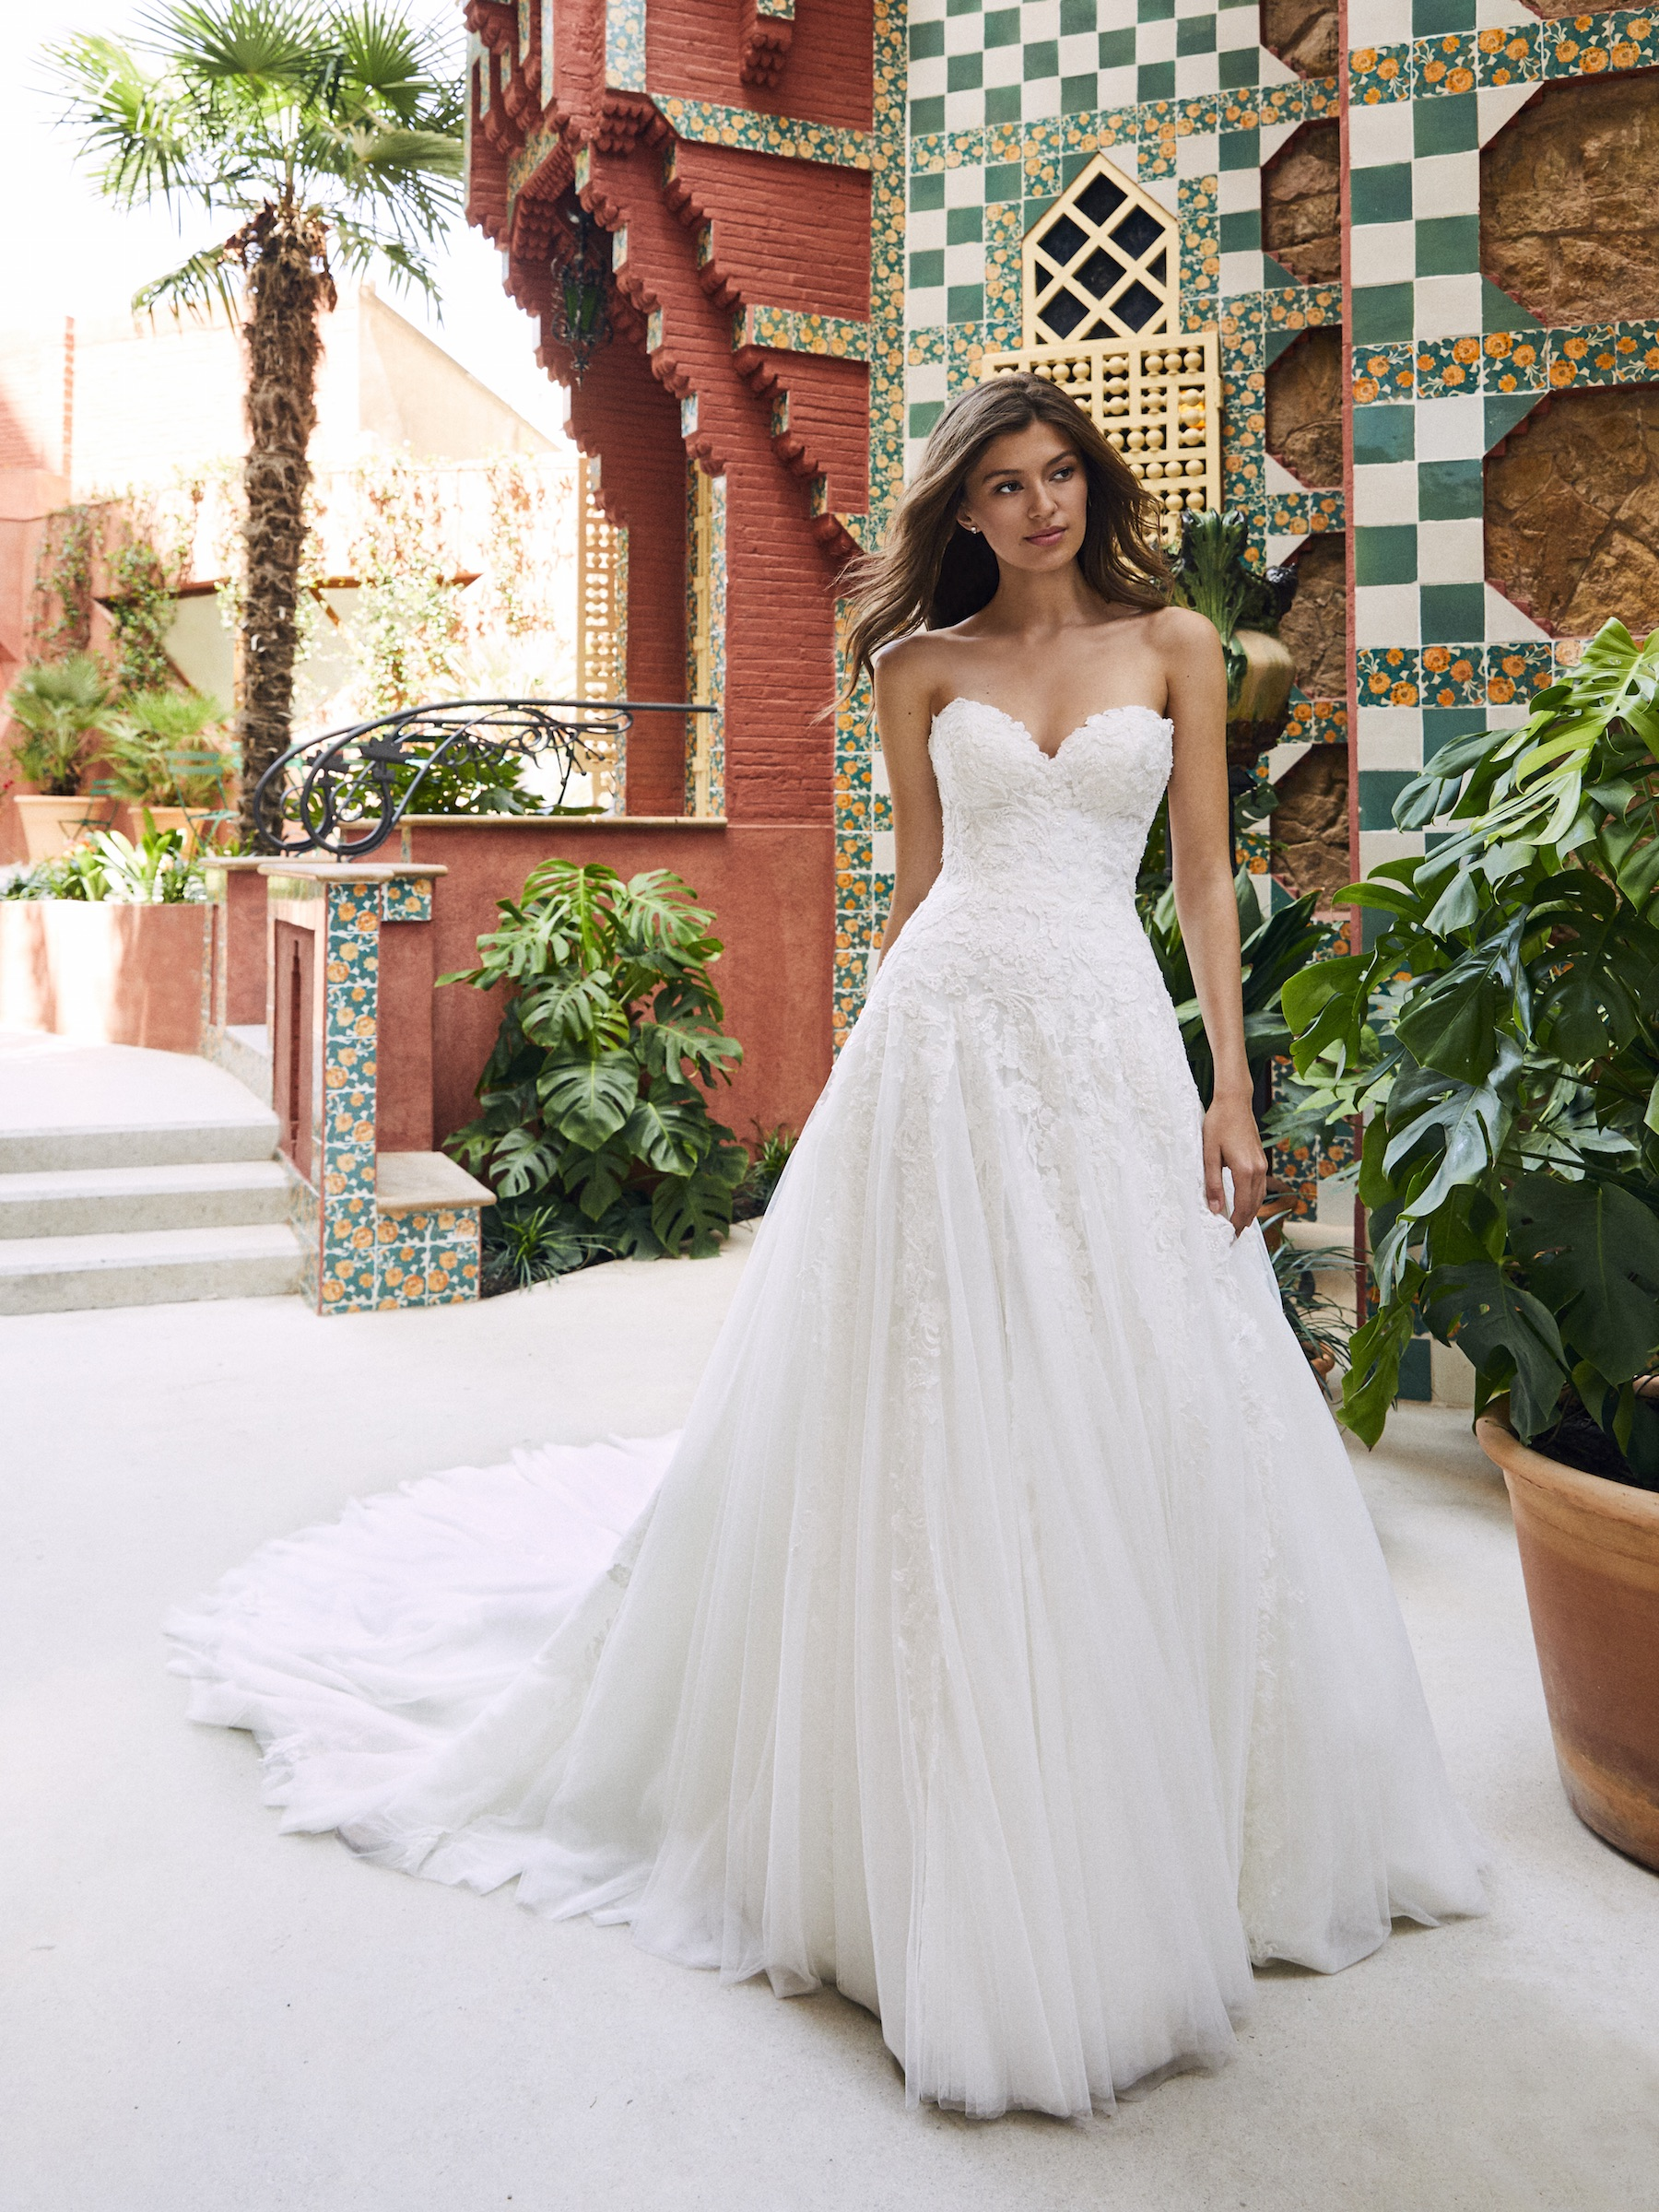 Strapless Sweetheart A Line Lace And Tulle Wedding Dress With Dramatic Train Kleinfeld Bridal